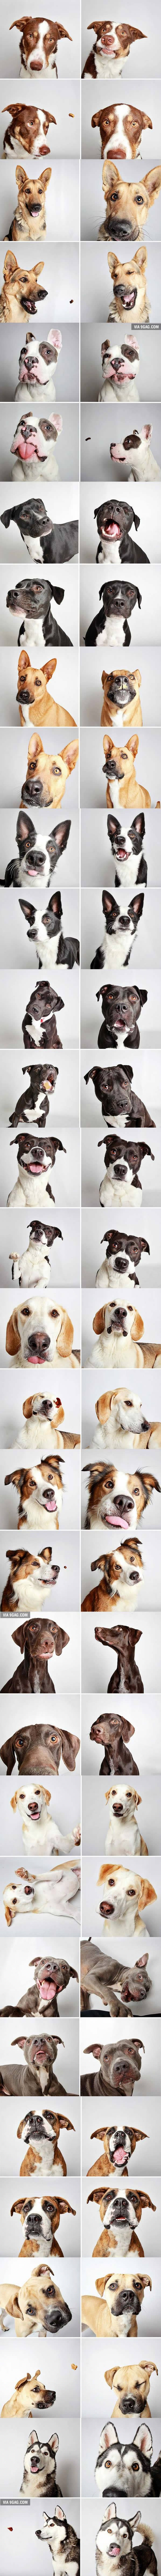 These Lovely Pictures Show That Dogs Love Photo-Booths As We Do!